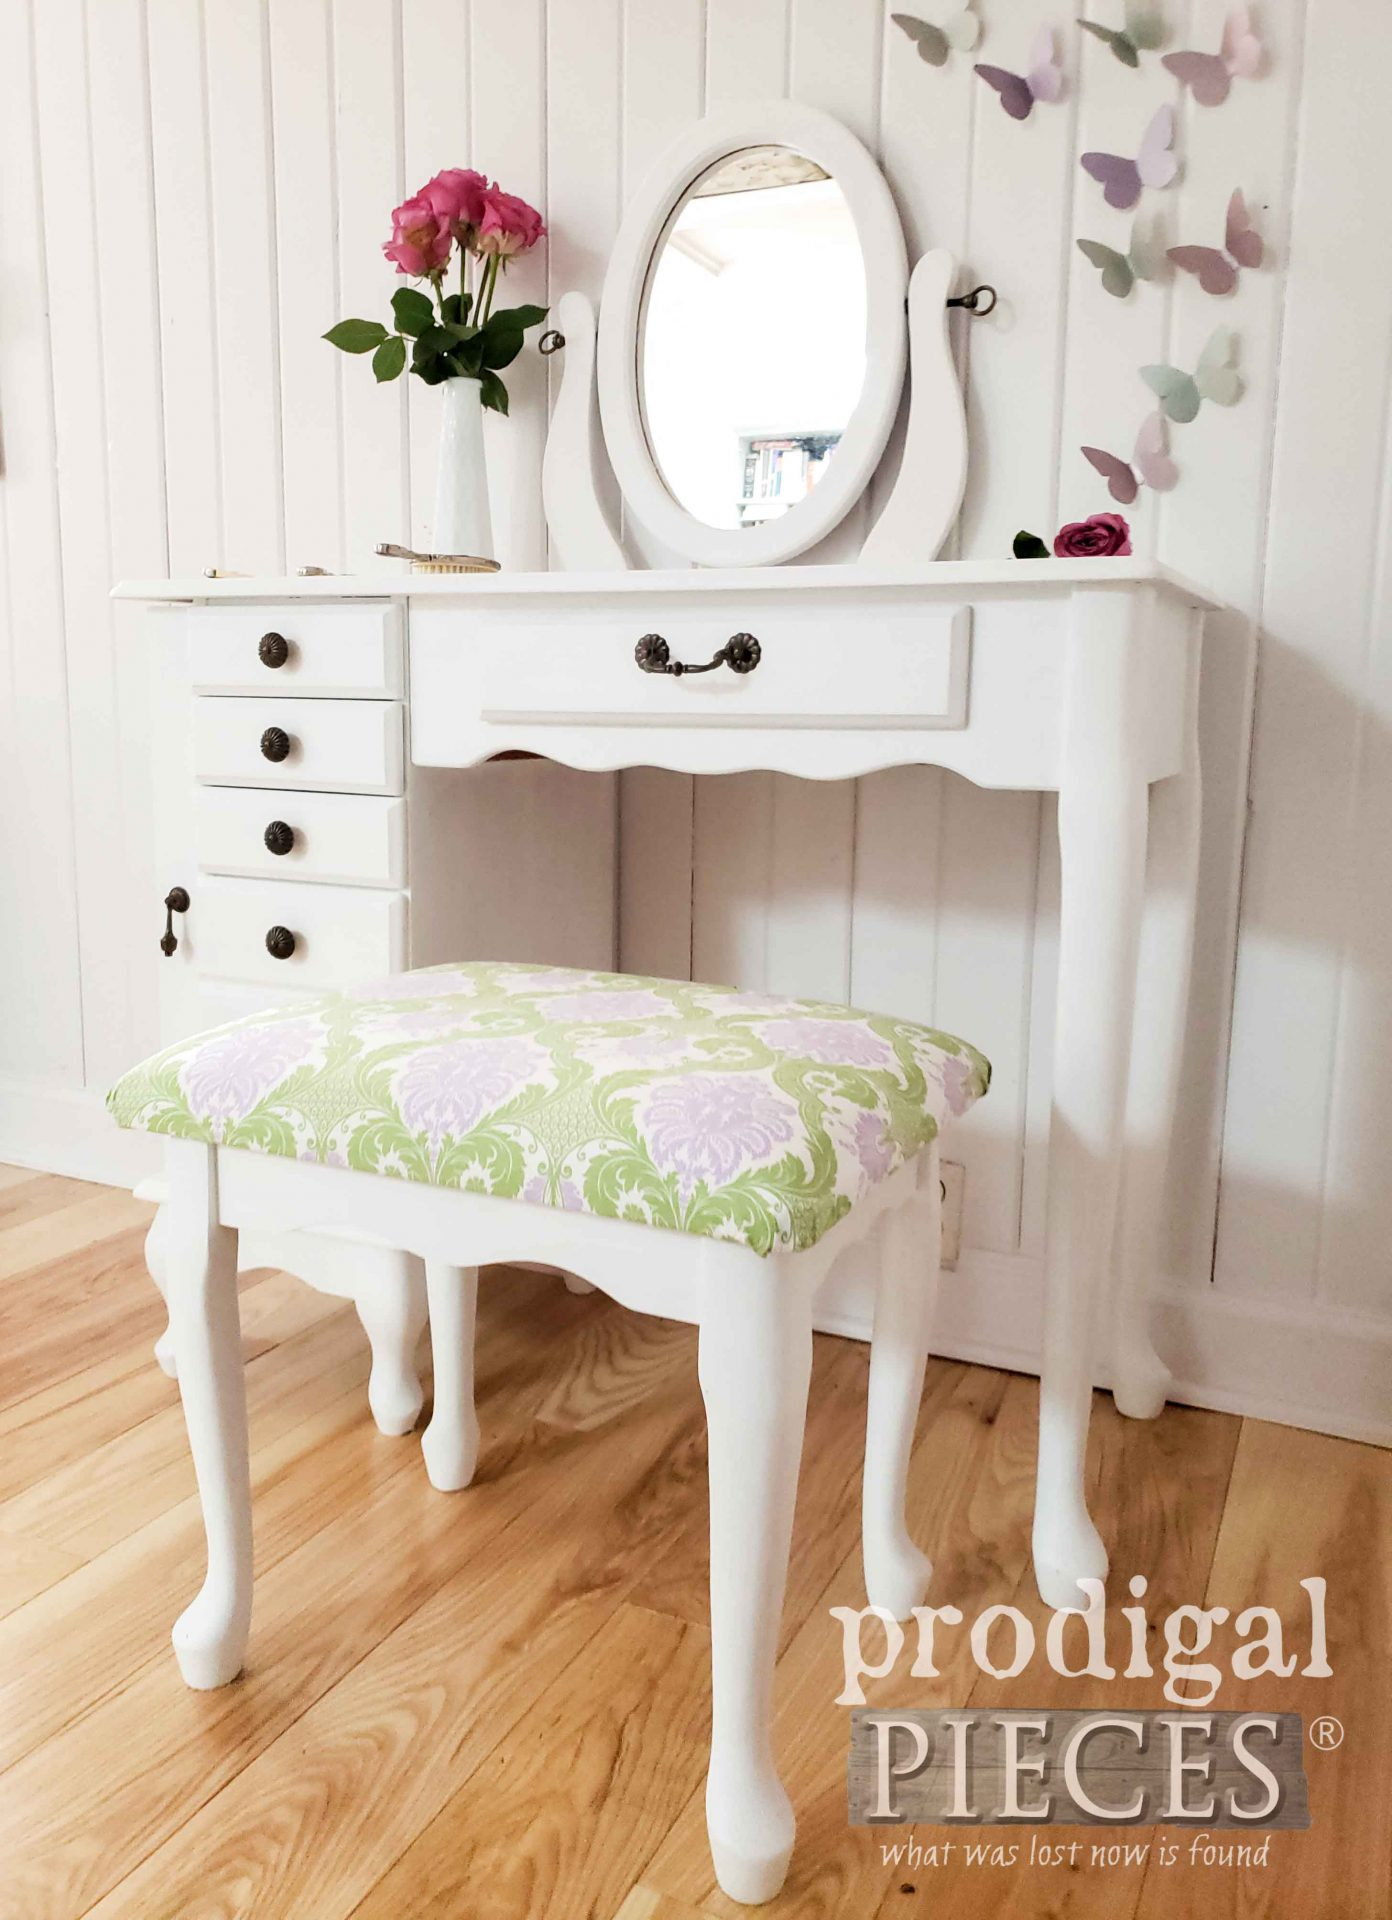 Girl's Vintage White Vanity Table Set in White by Prodigal Pieces | prodigalpieces.com #prodigalpieces #furniture #diy #home #homedecor #diy #girls #vintage